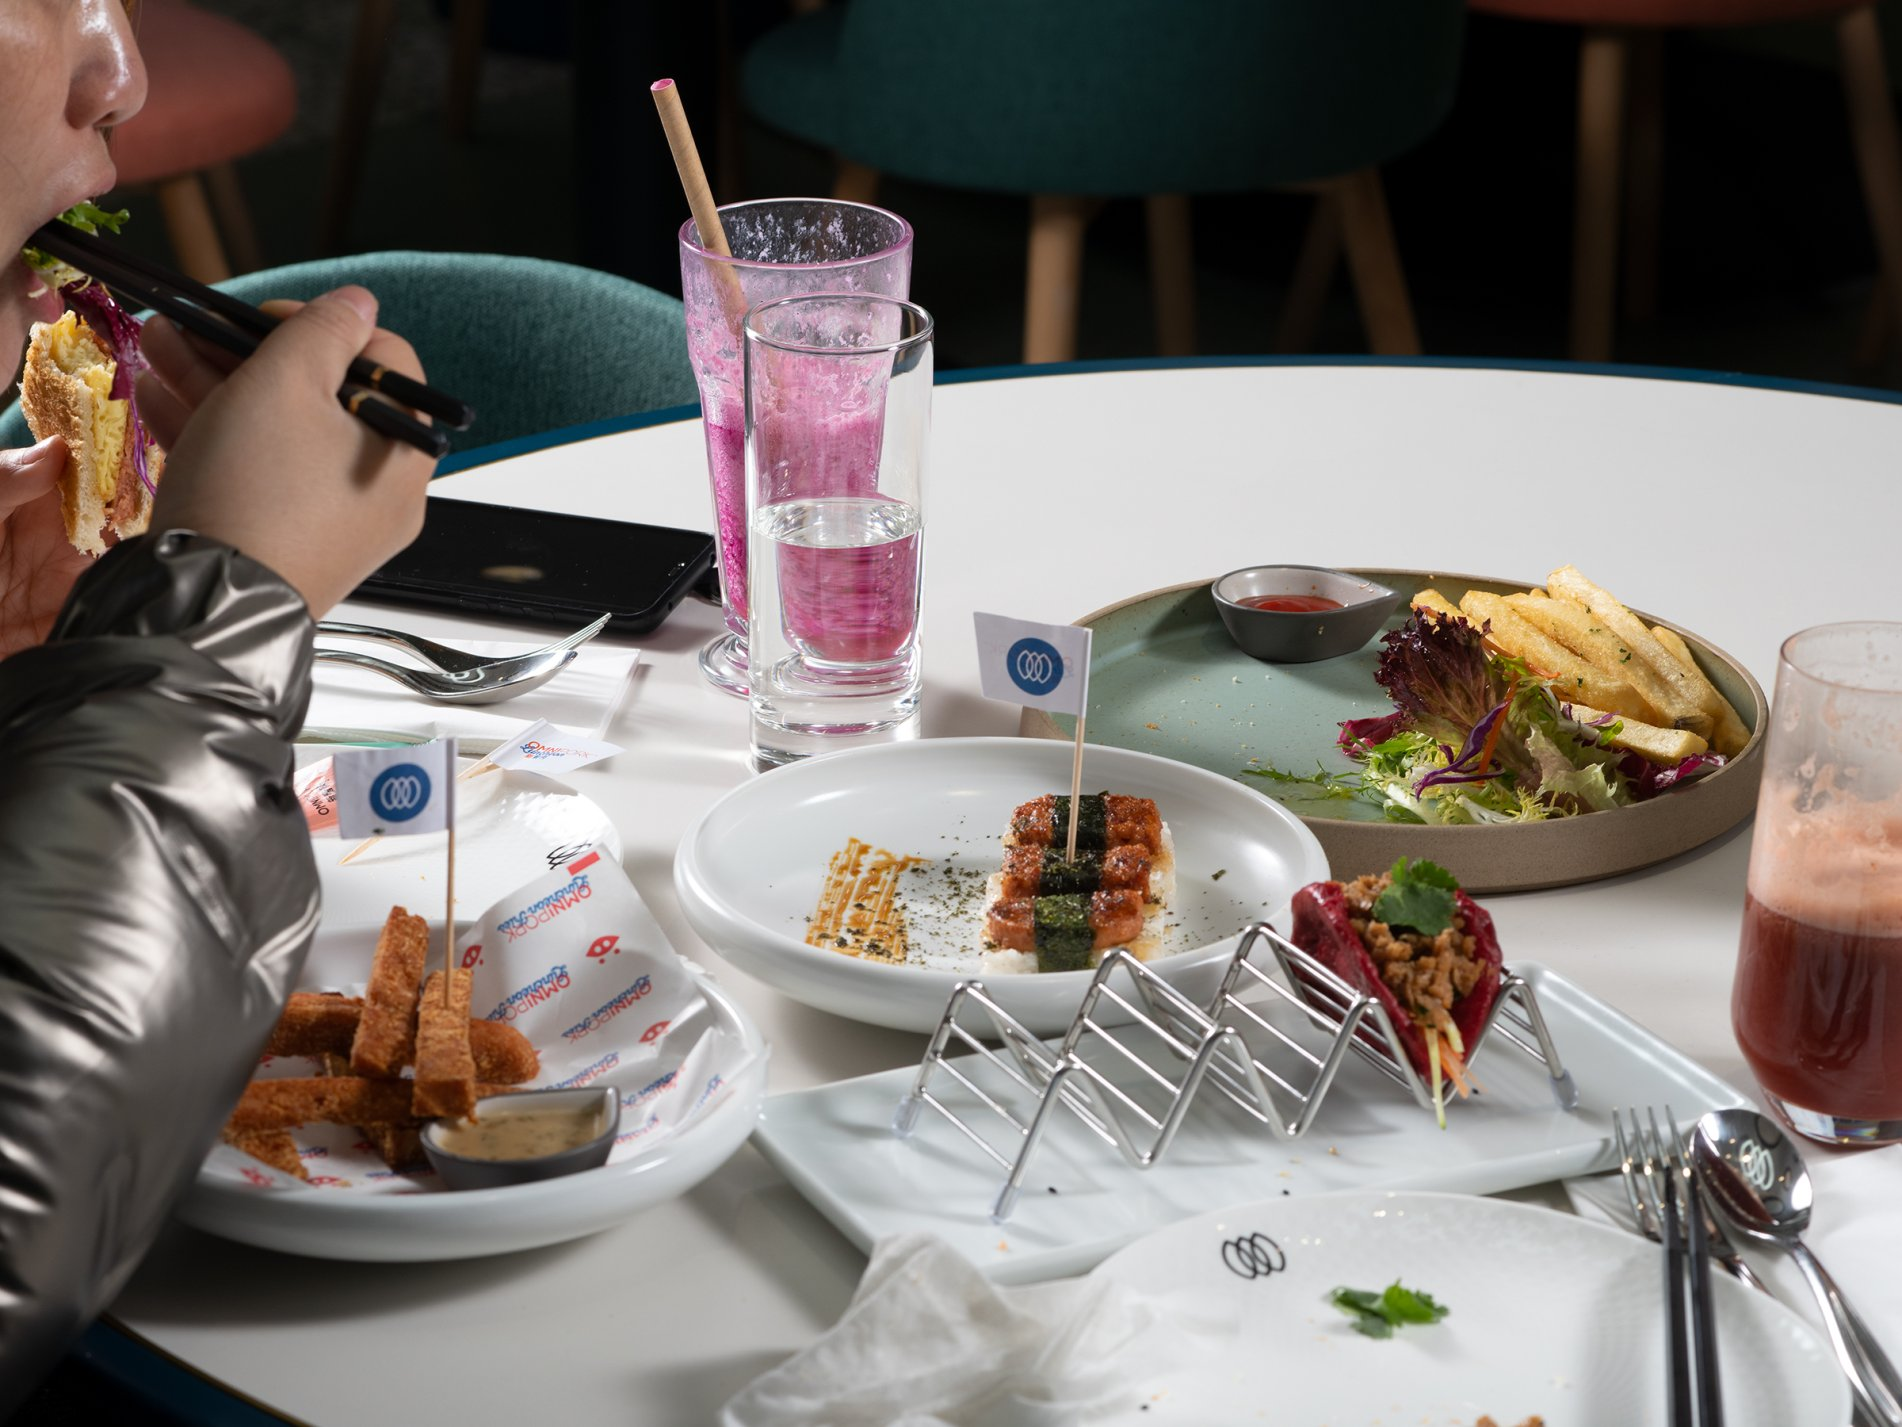 A customer tucks into a meat-free banquet at Green Common café in Shanghai on Jan. 13